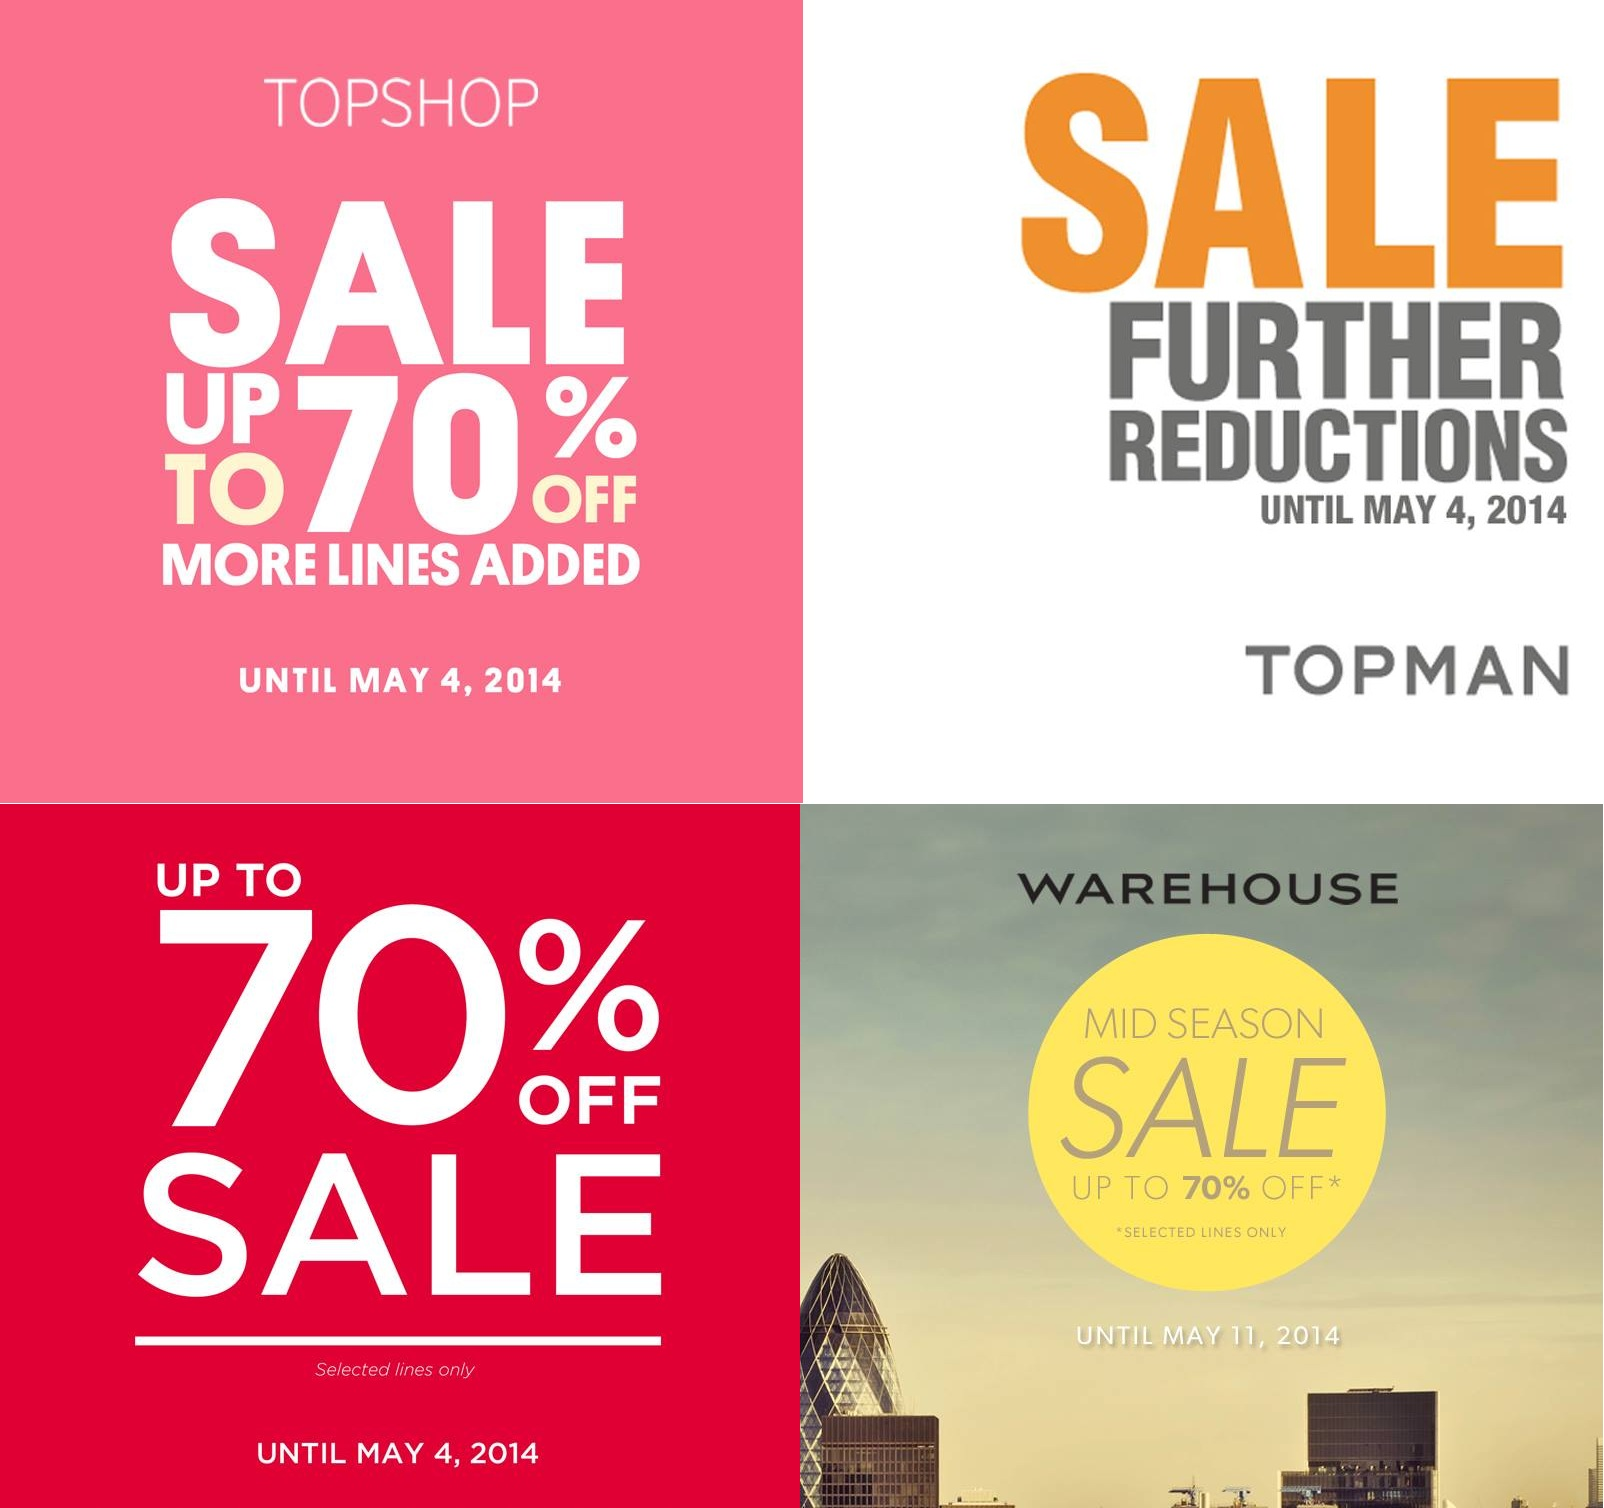 Topshop, Topman, Dorothy Perkins, & Warehouse Mid-Season Sale (Further Reductions) April - May 2014